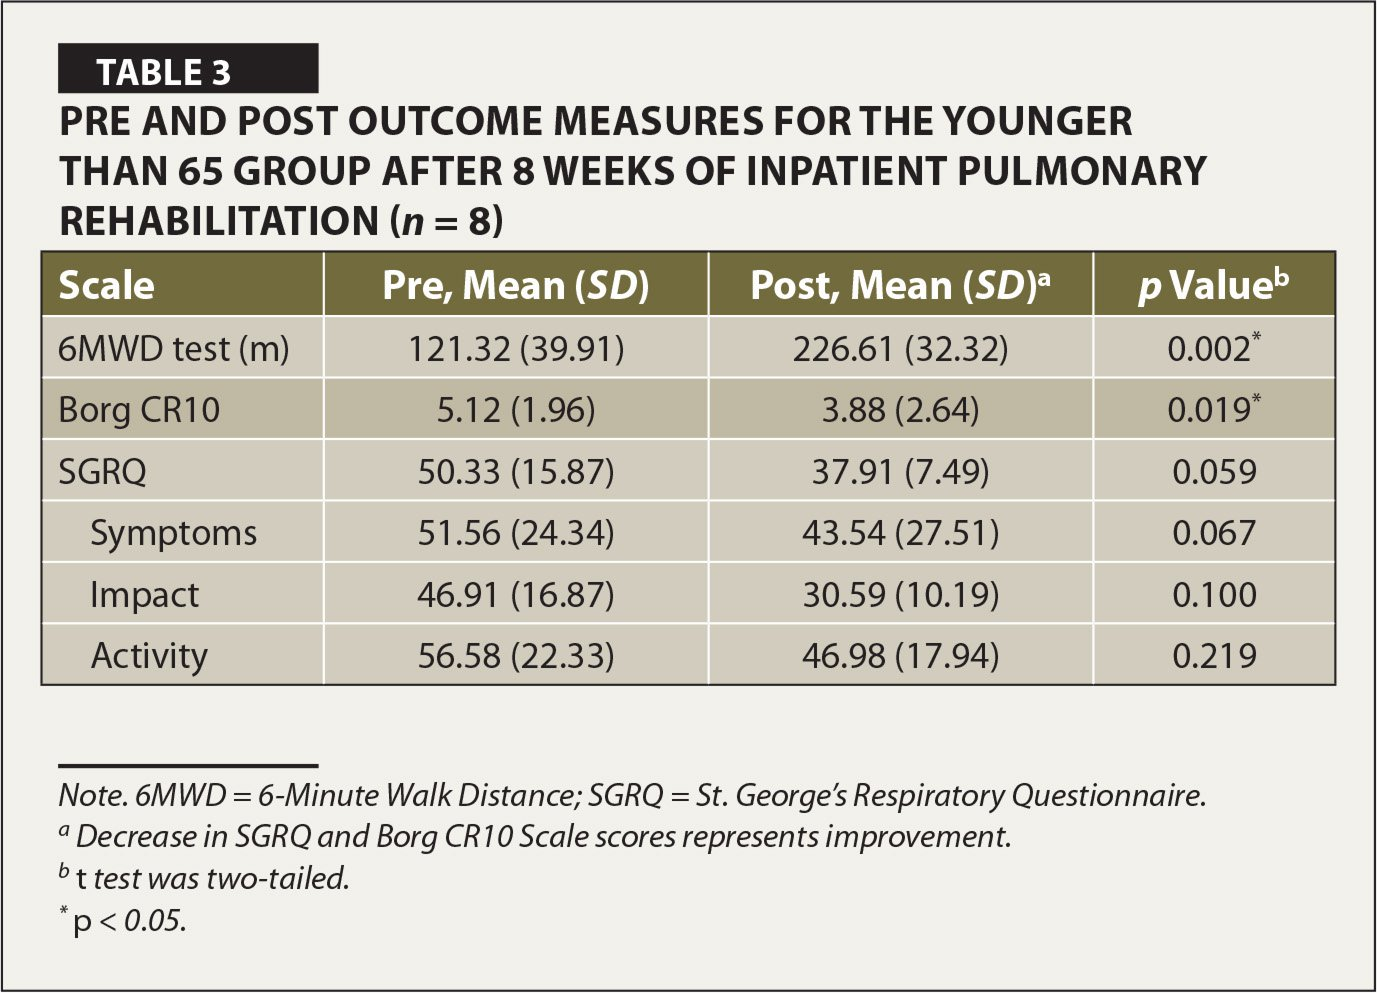 Pre and Post Outcome Measures for the Younger than 65 Group After 8 Weeks of Inpatient Pulmonary Rehabilitation (n = 8)